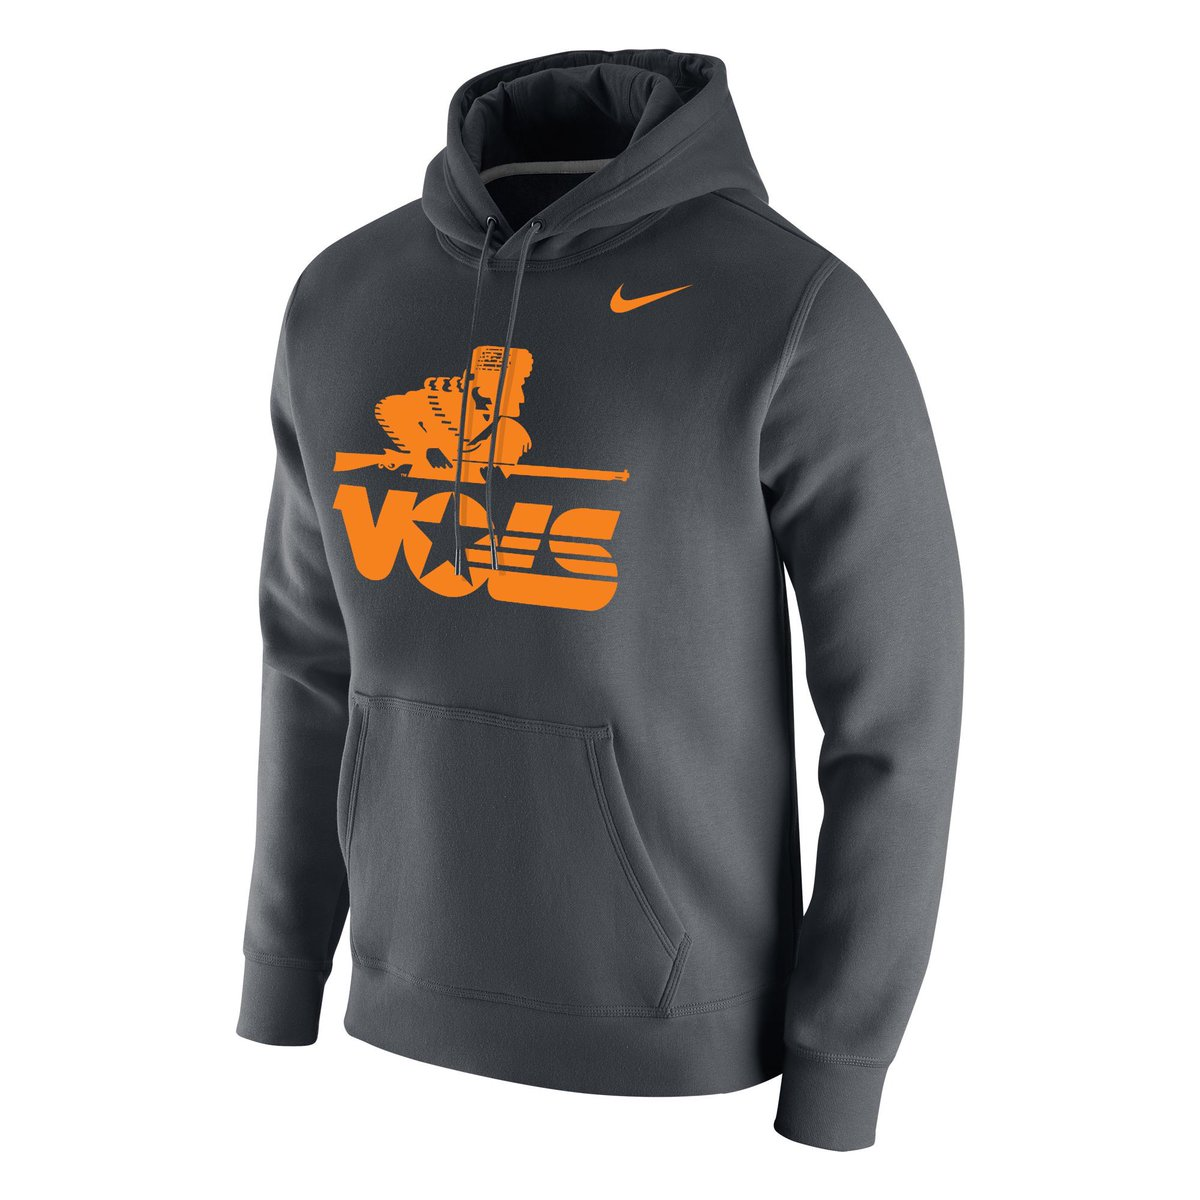 @tuckerwood12 @UTVolShop Well, they already have the E3E... utvolshop.com/p-68562.aspx